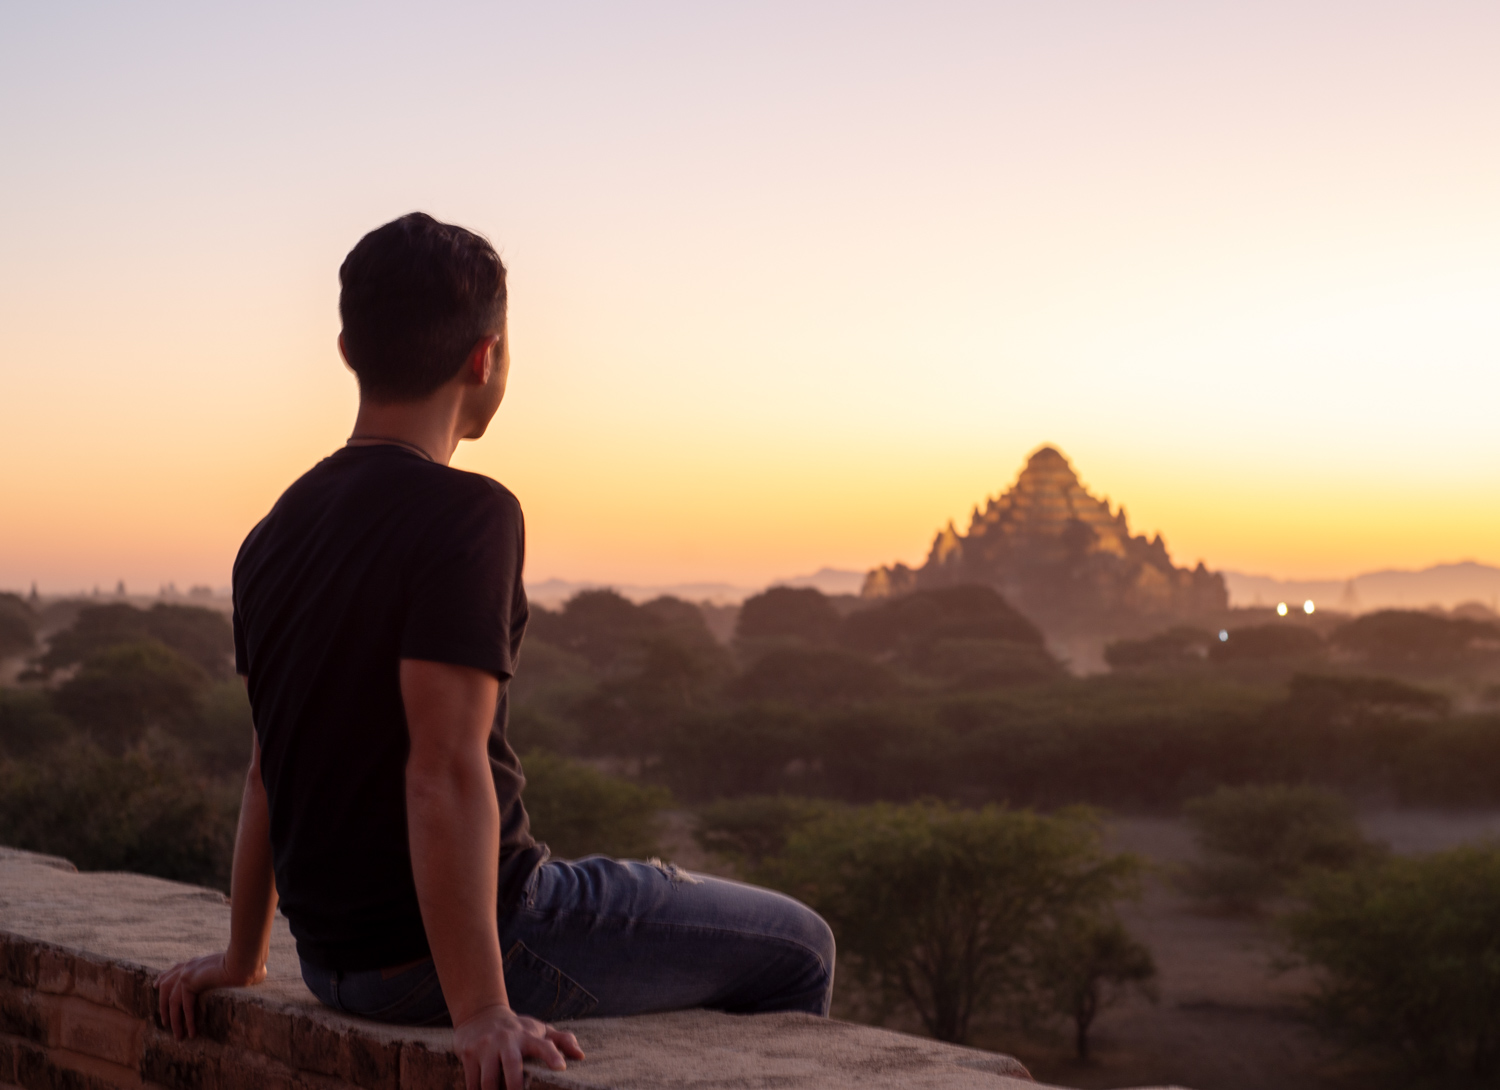 Golden Hour: Dhammayangyi Temple after Sunset in Bagan